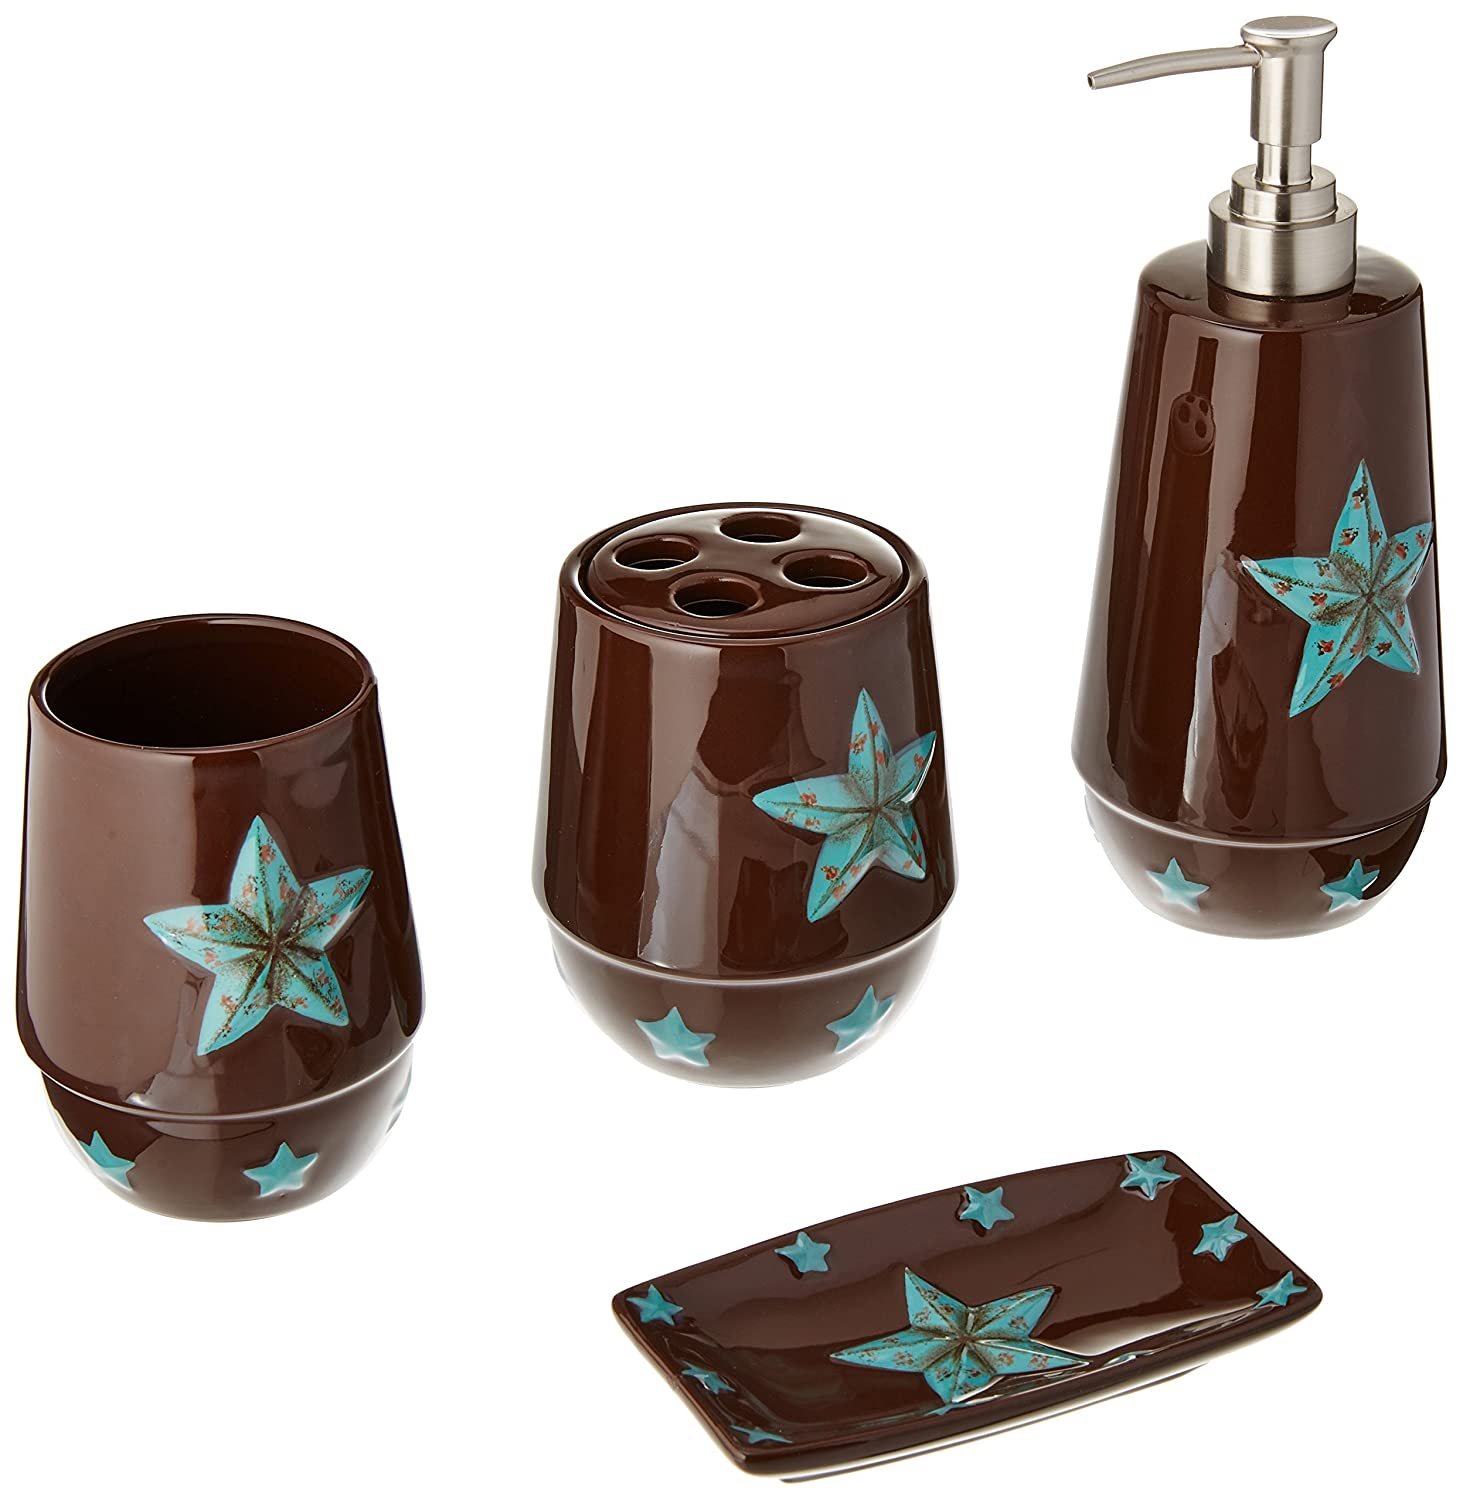 Amazon.com: HiEnd Accents Western Star Bathroom Set, Turquoise: Home ...